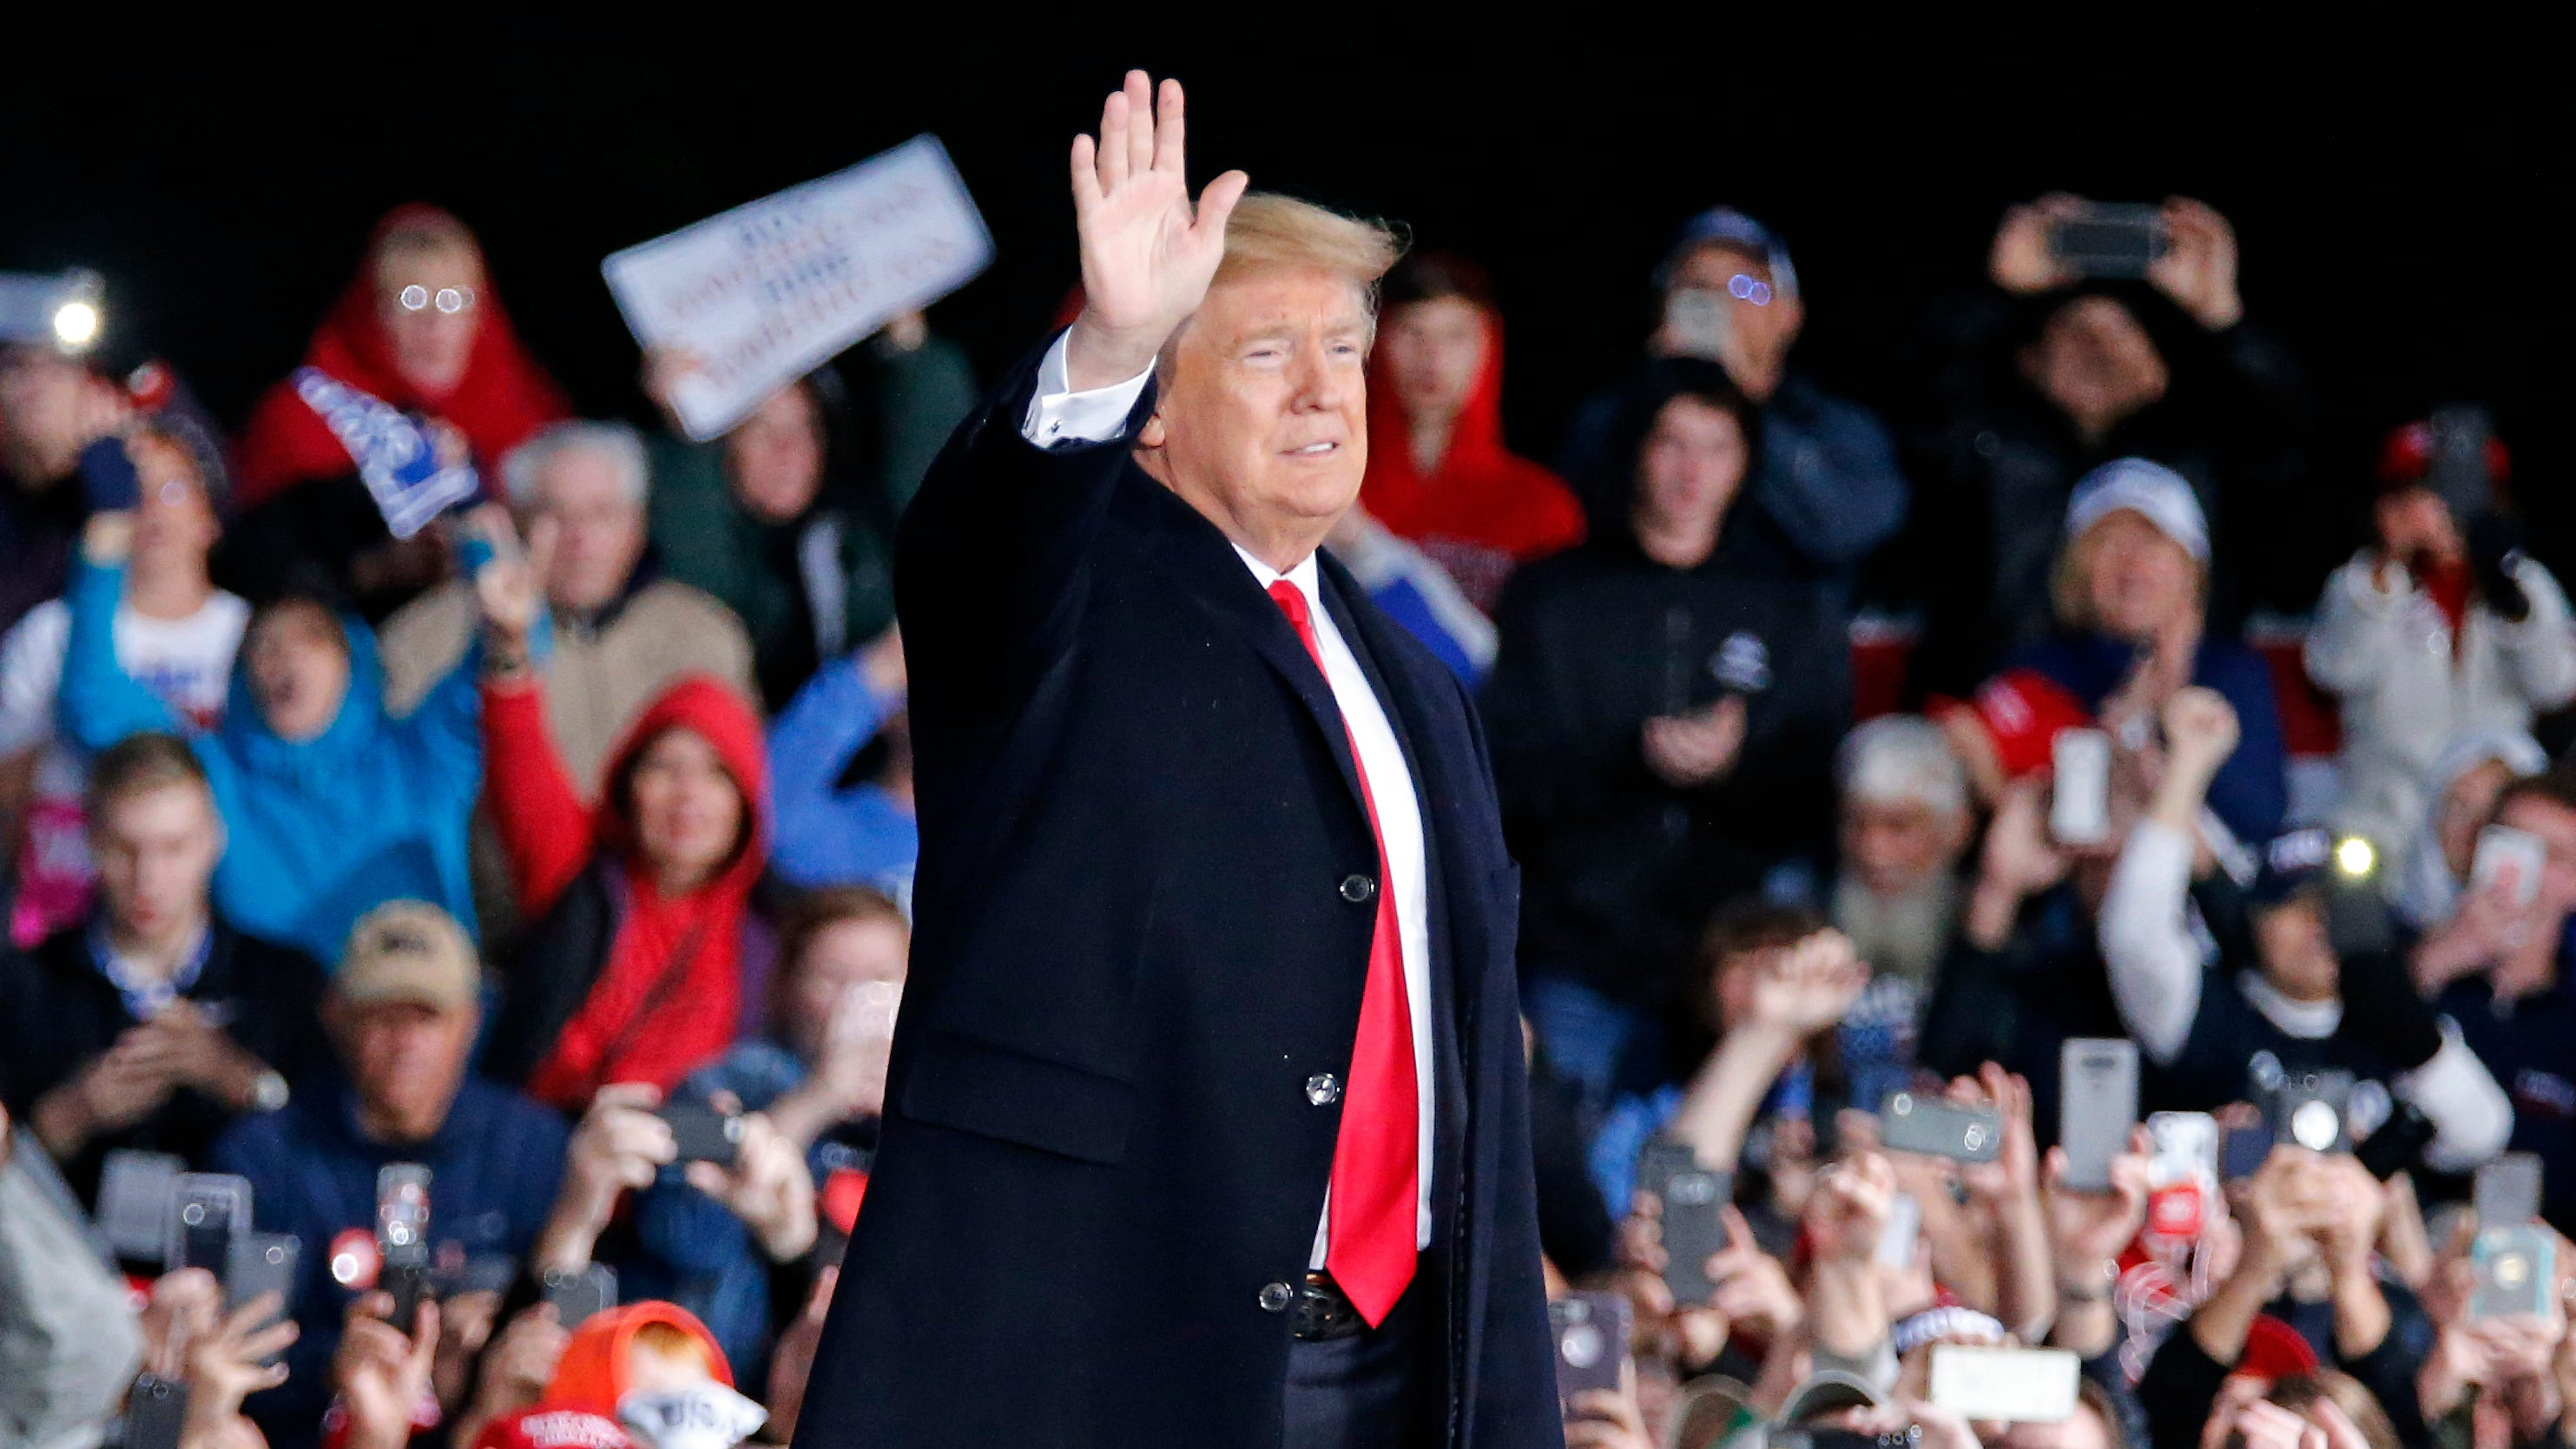 President Donald Trump takes the state as he's introduced during a Make America Great Again rally at the warren County Fair Grounds in Lebanon, Ohio, on  Oct. 12, 2018.